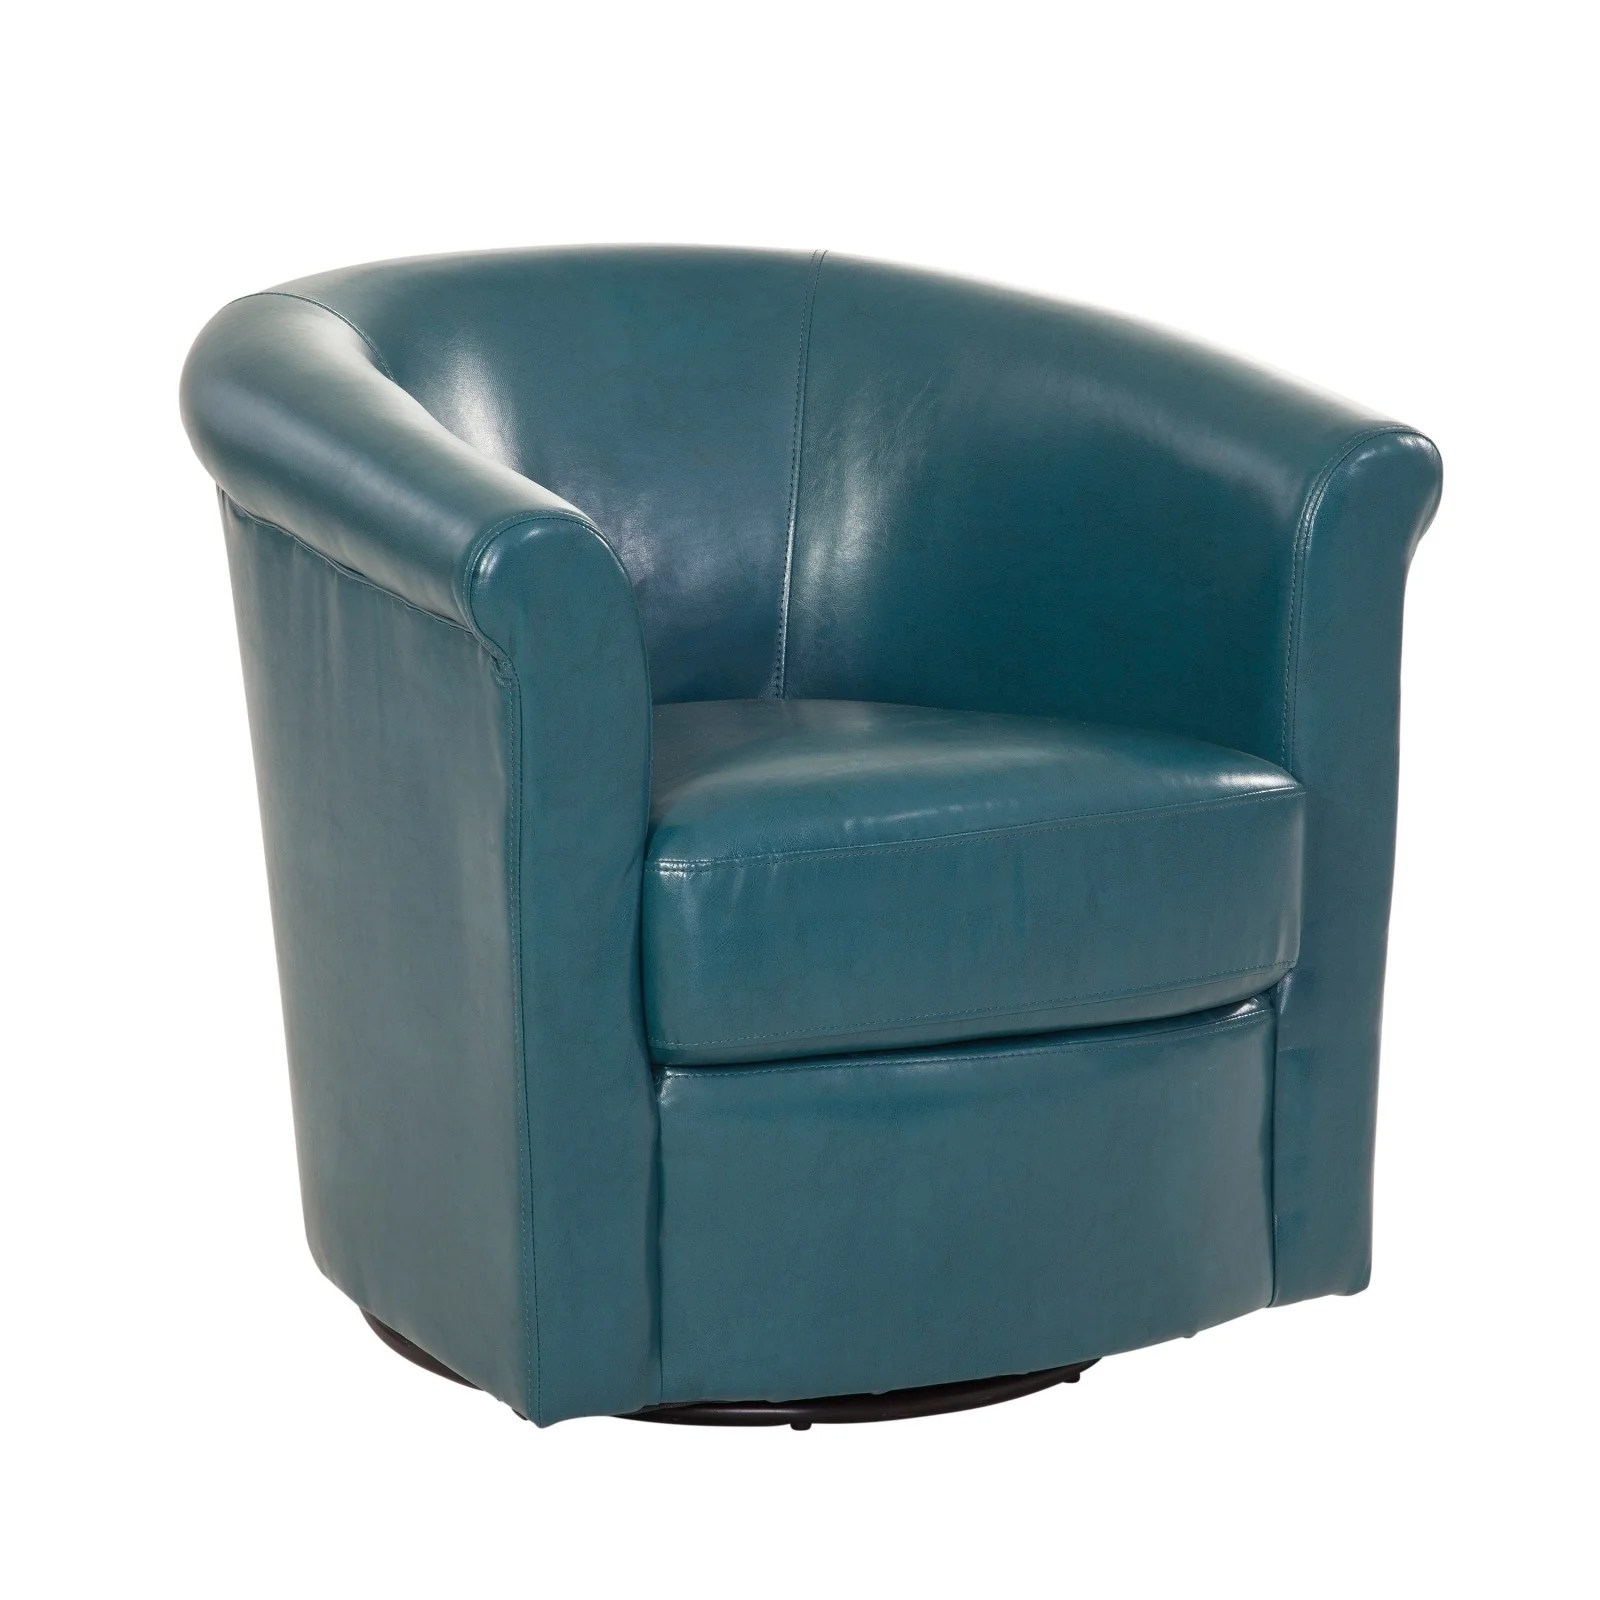 swivel tub chairs toddler plastic shop marvel chair free shipping today overstock com 20504985